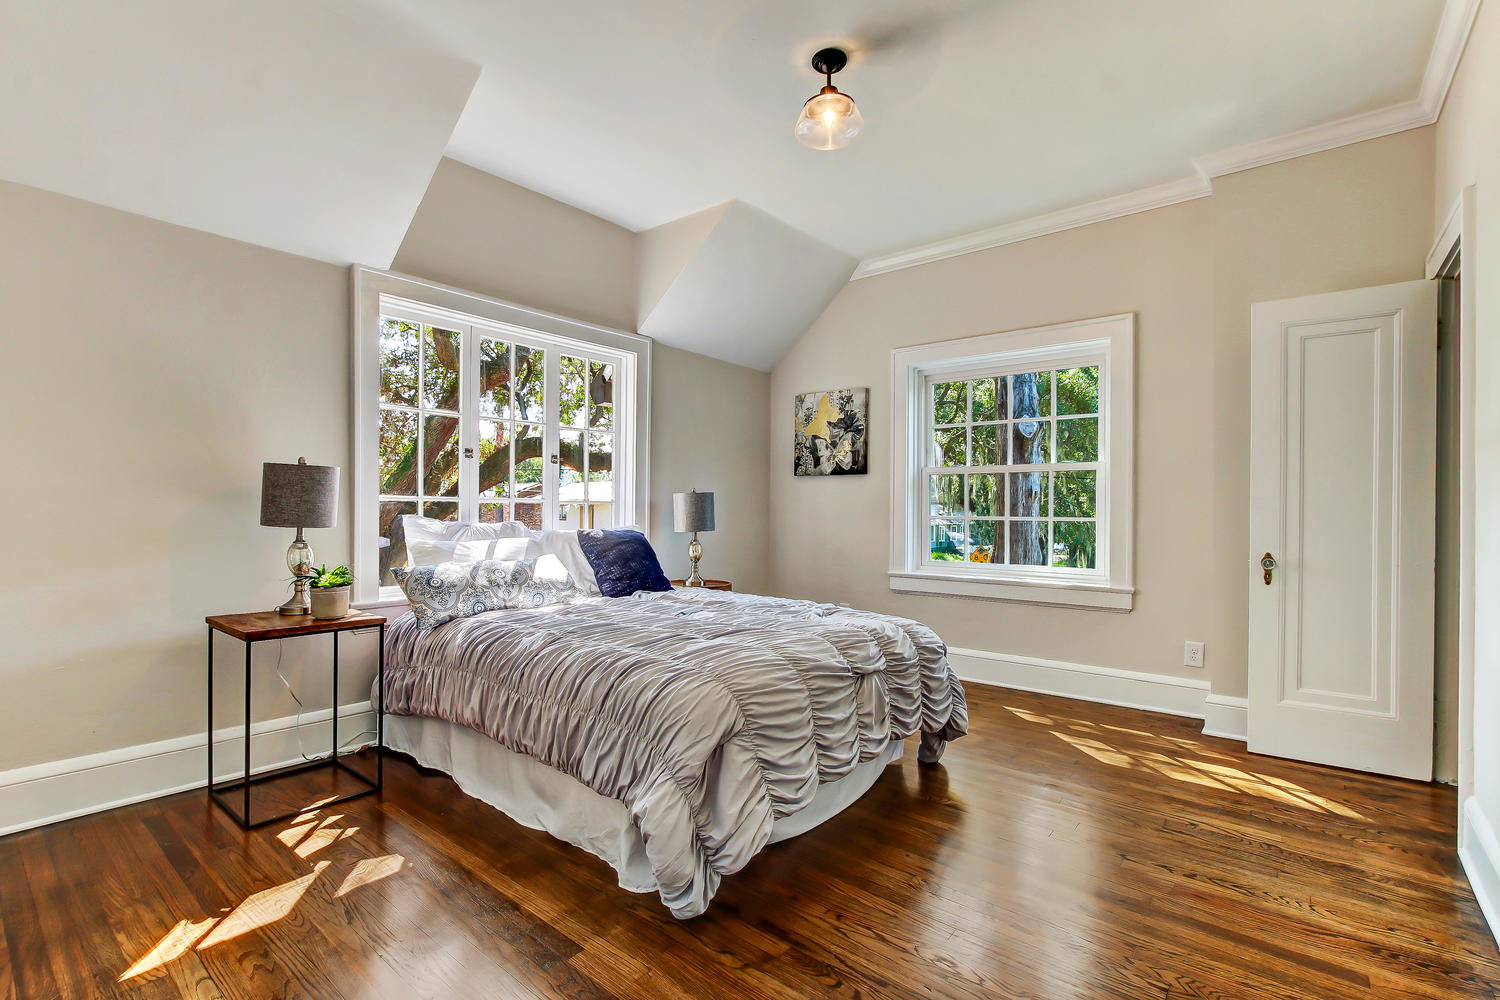 Spacious guestroom with hardwood floors and natural light